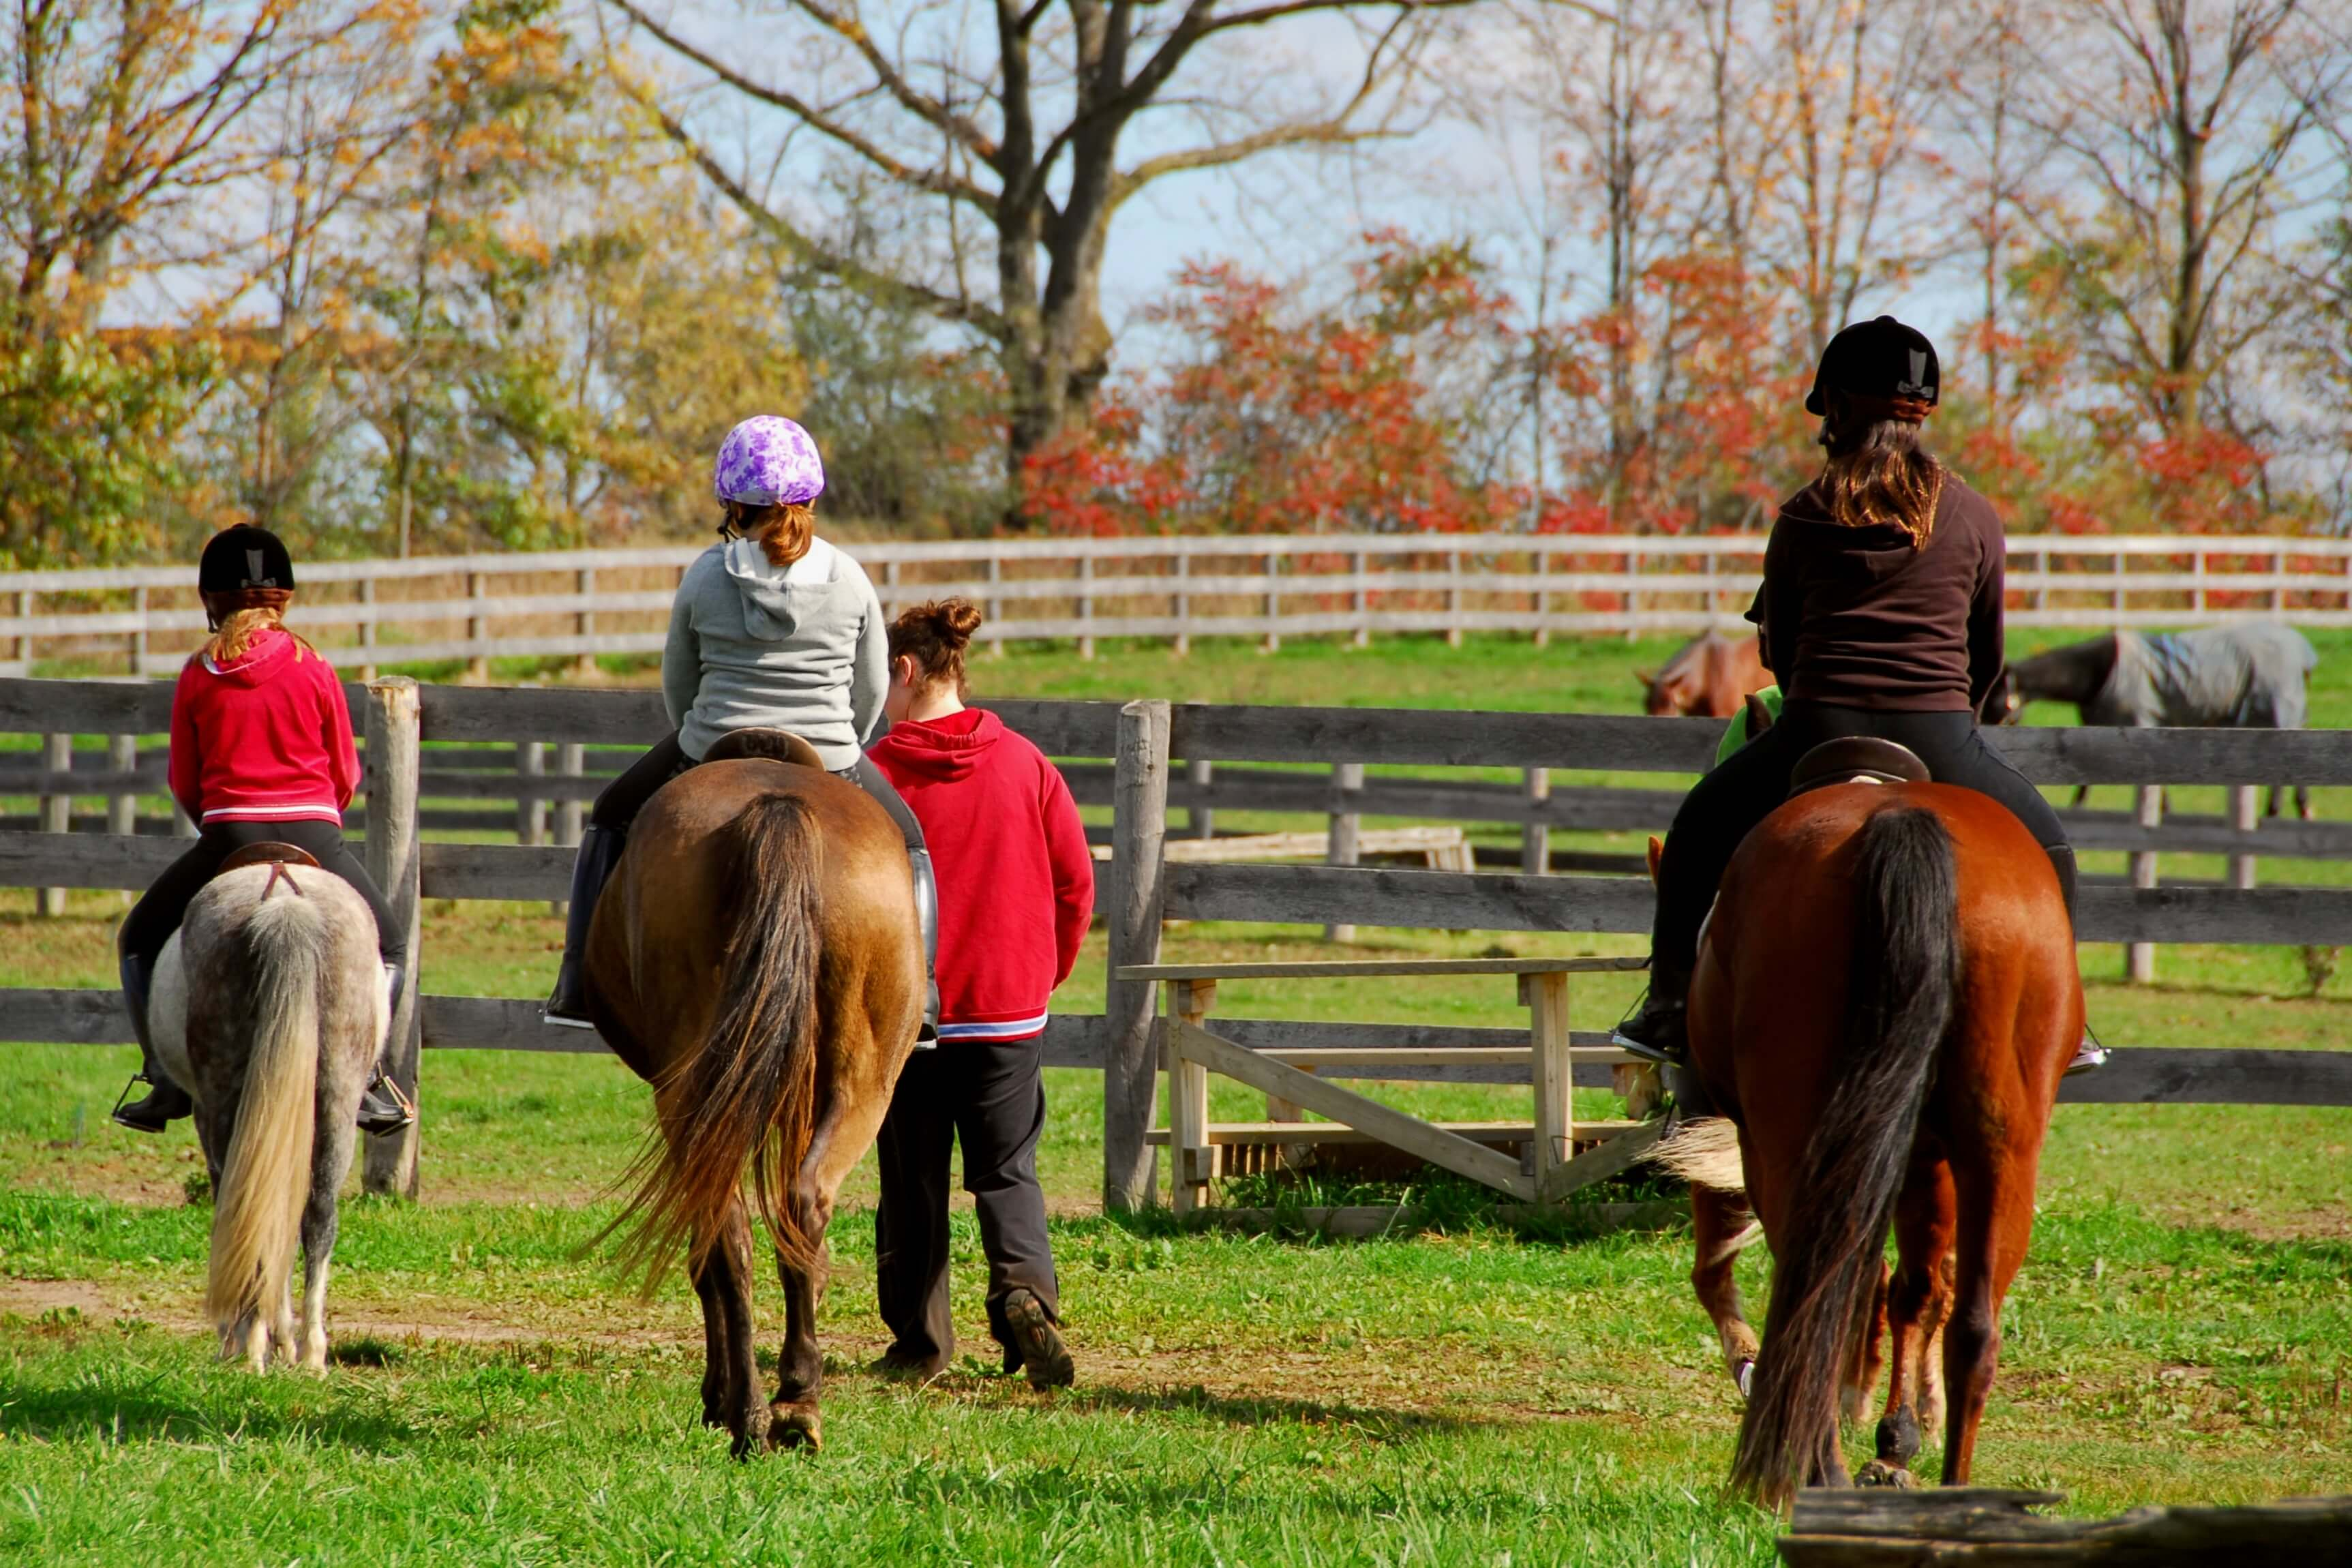 Children riding ponies and horses in a countryside